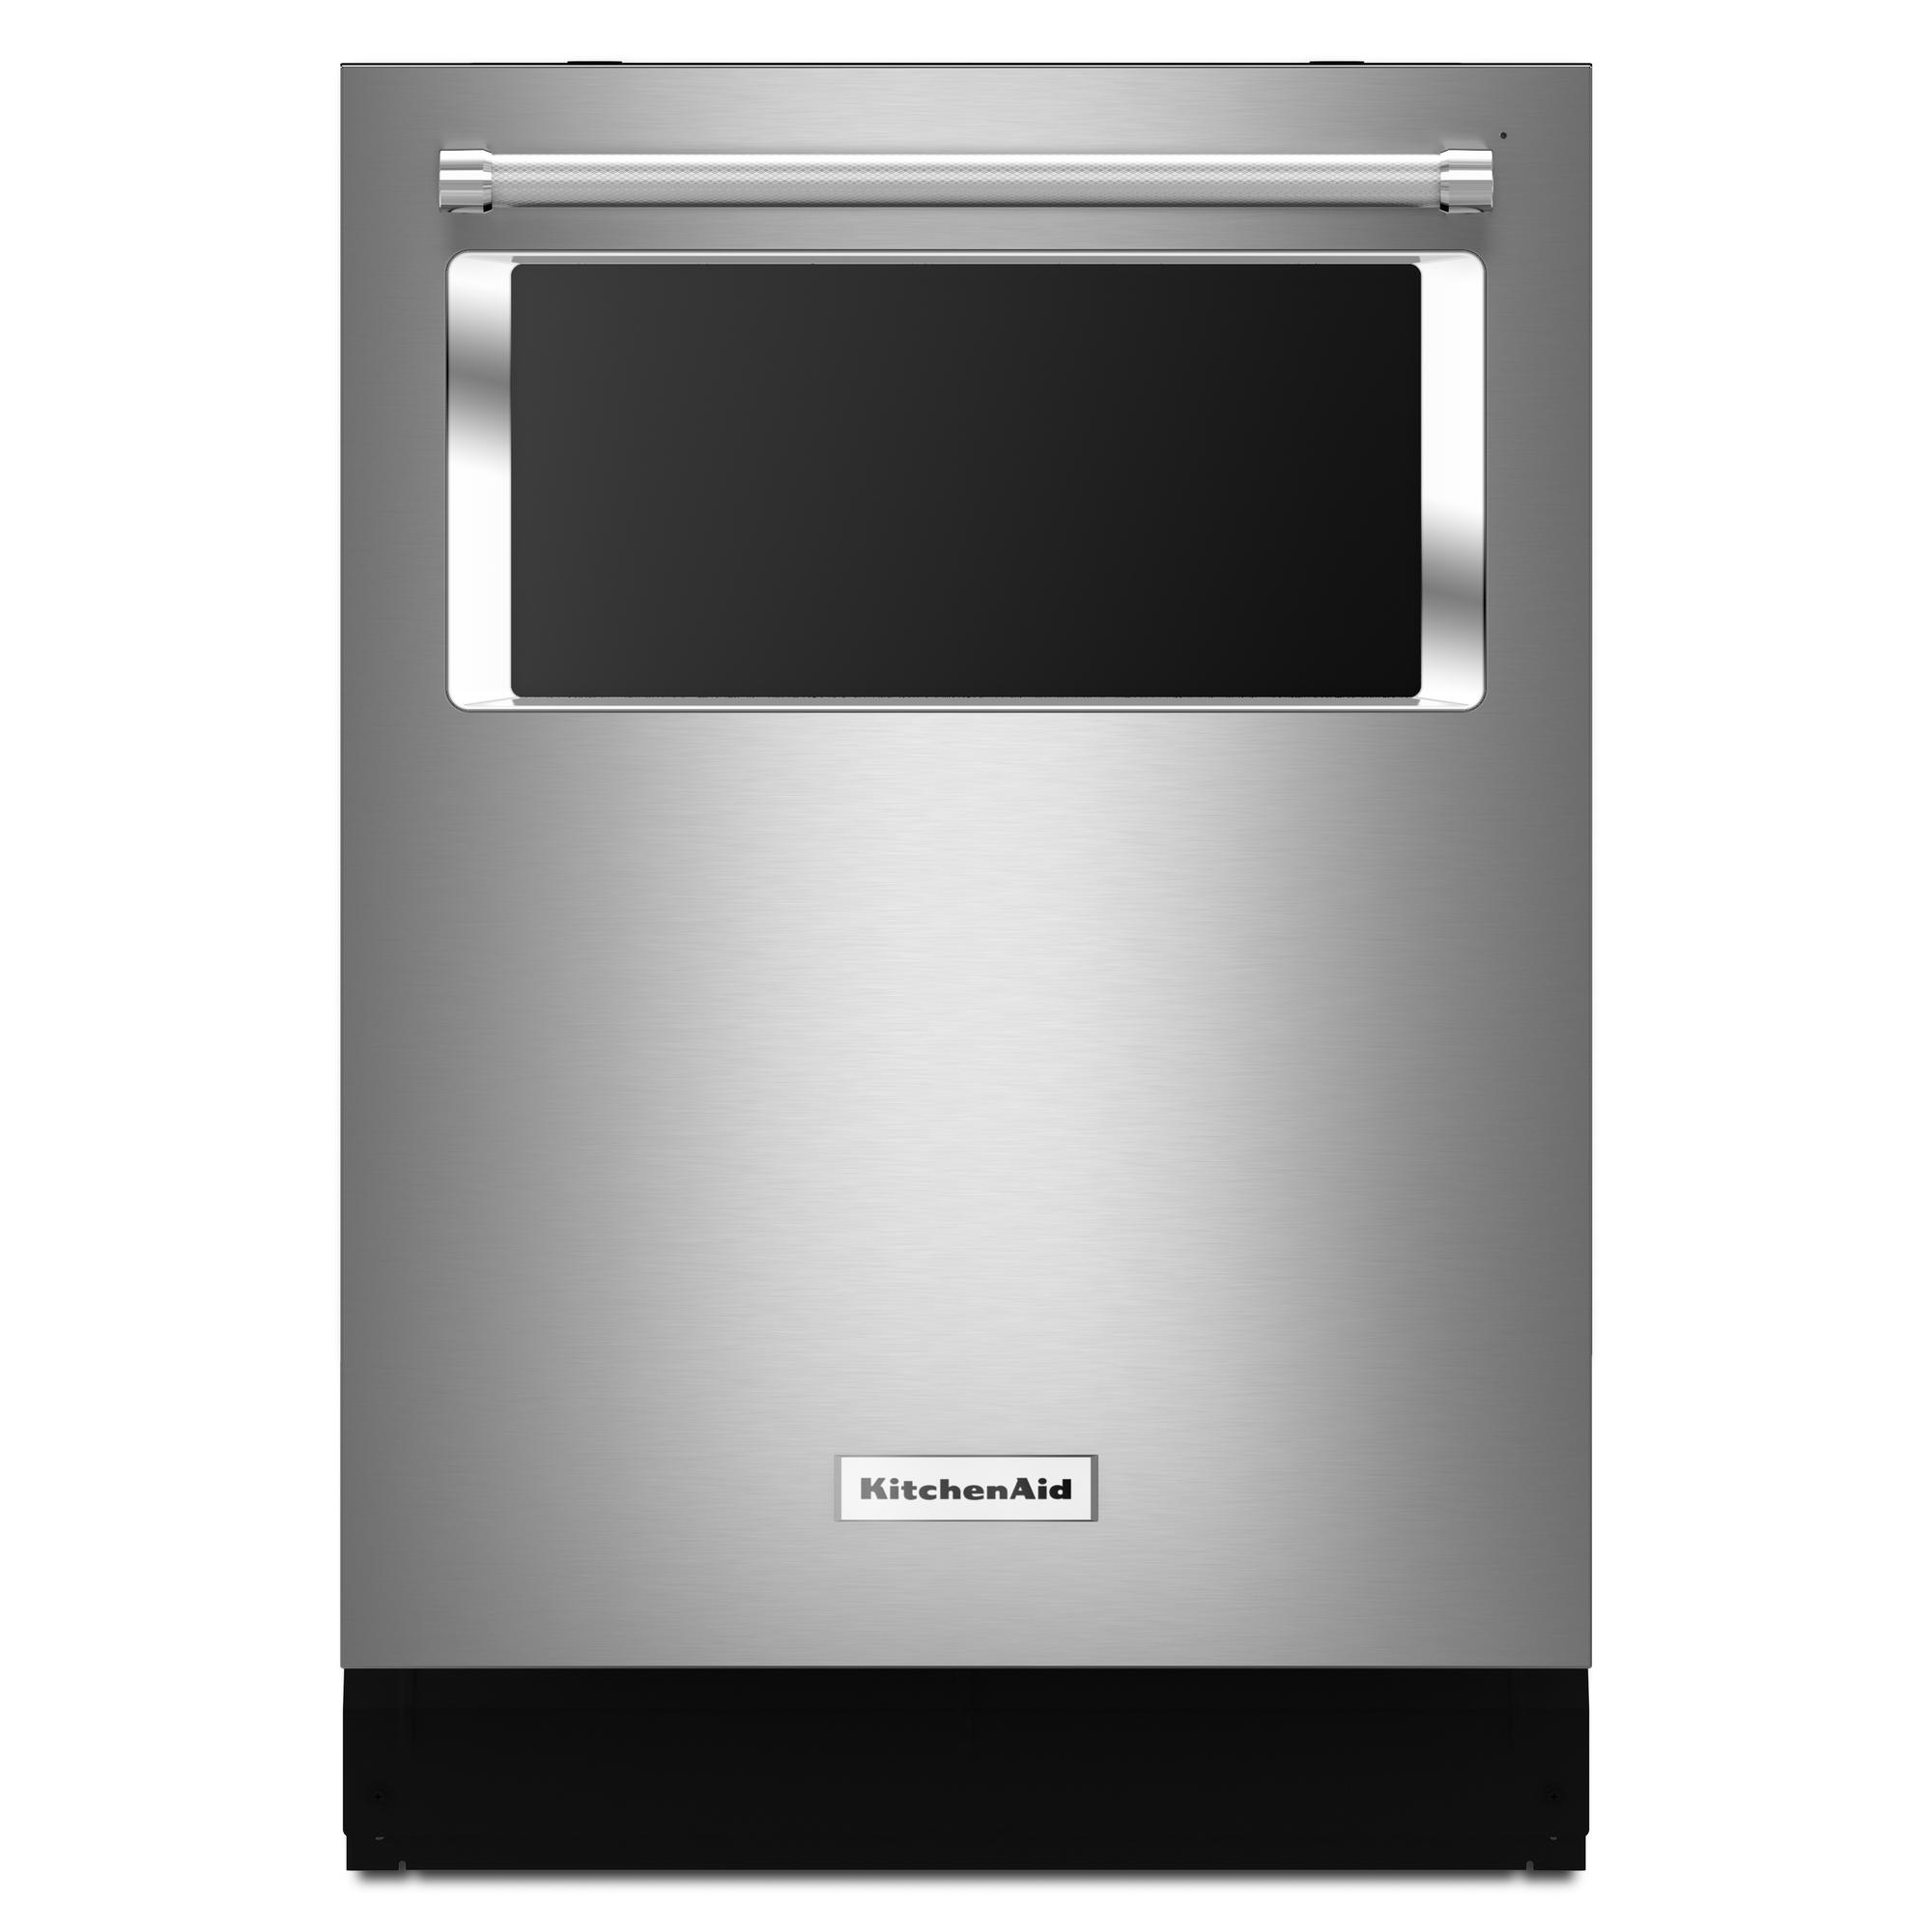 KitchenAid KDTM384ESS 24 Top Control Built-In Dishwasher - Stainless Steel